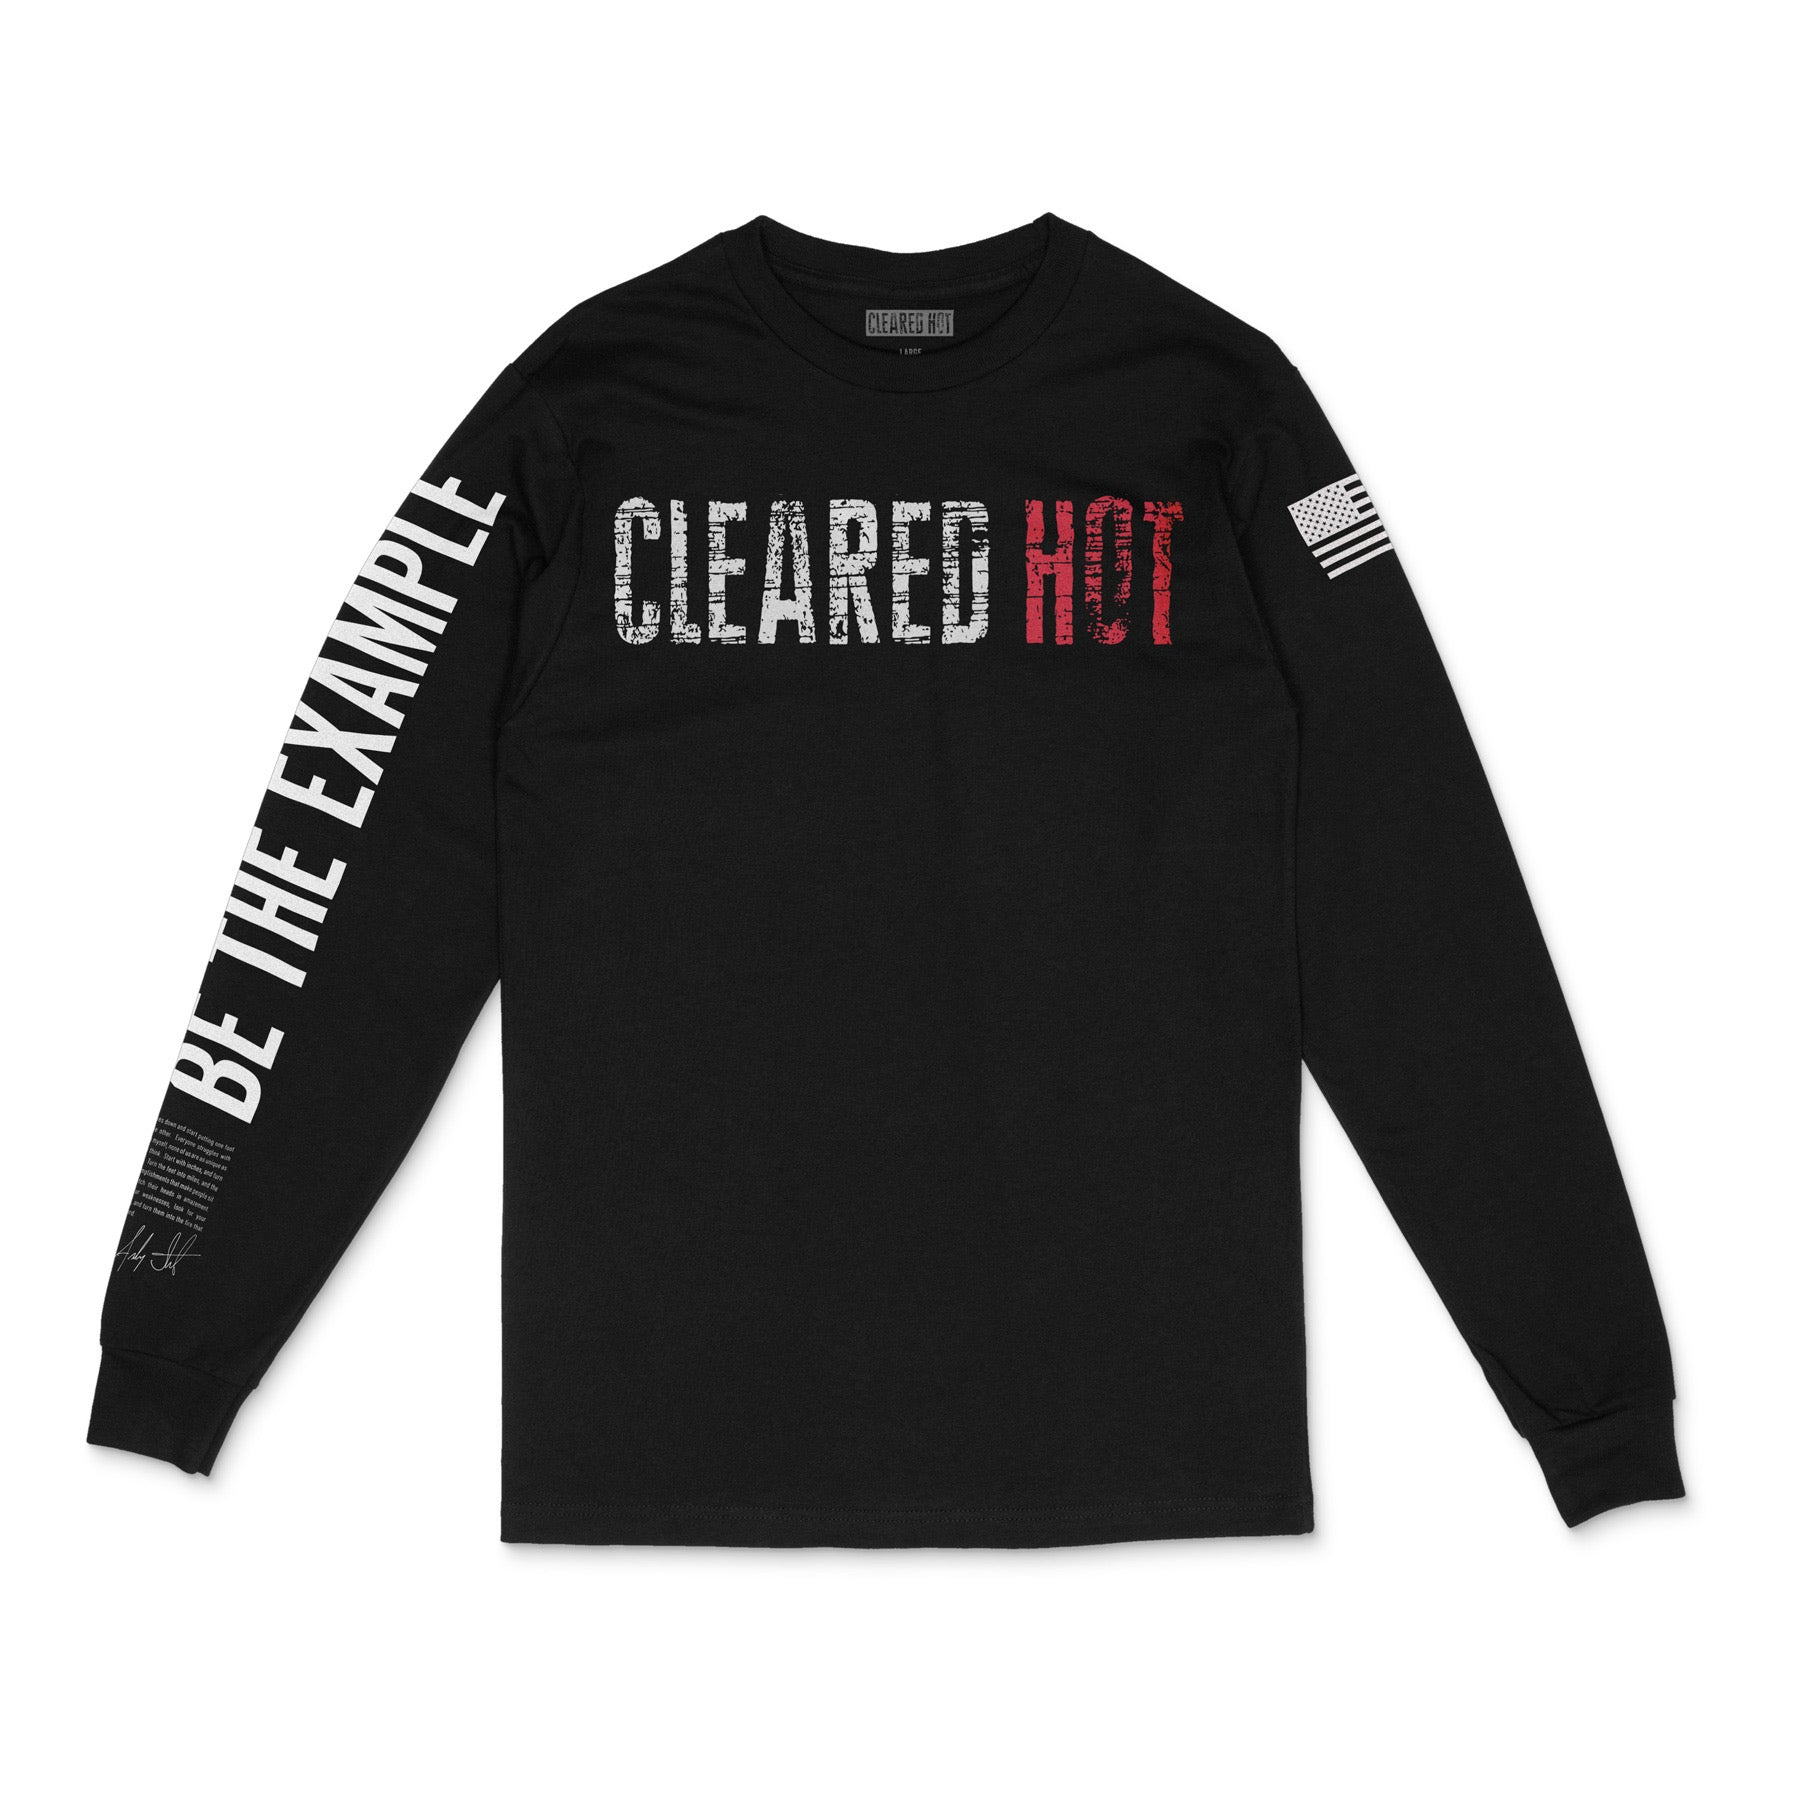 Cleared Hot Long Sleeve - Black